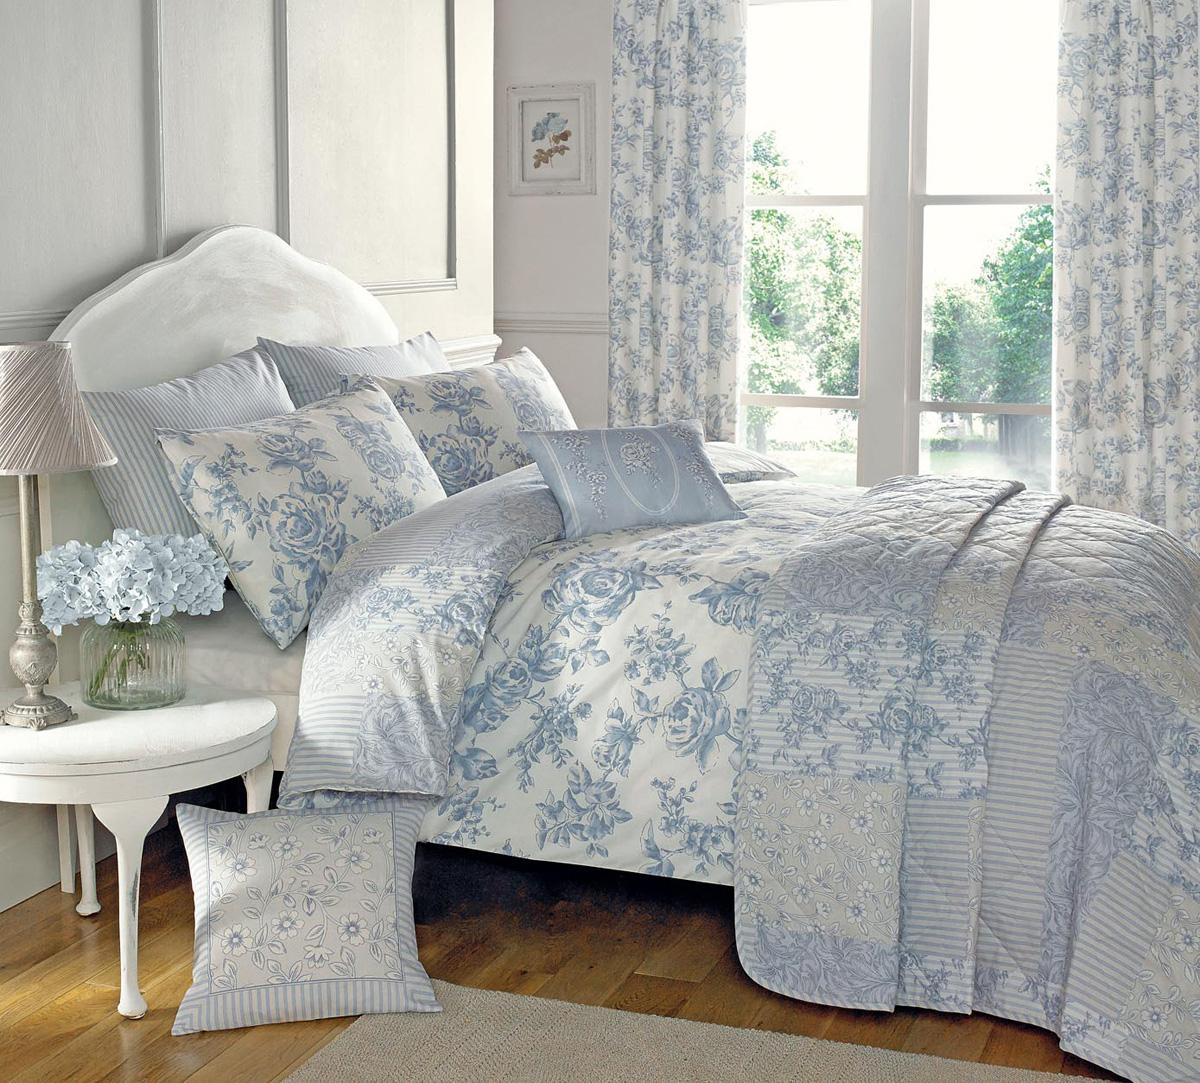 curtains teal and yellow through shower see bedding curtain target grey country to bed ceiling floor